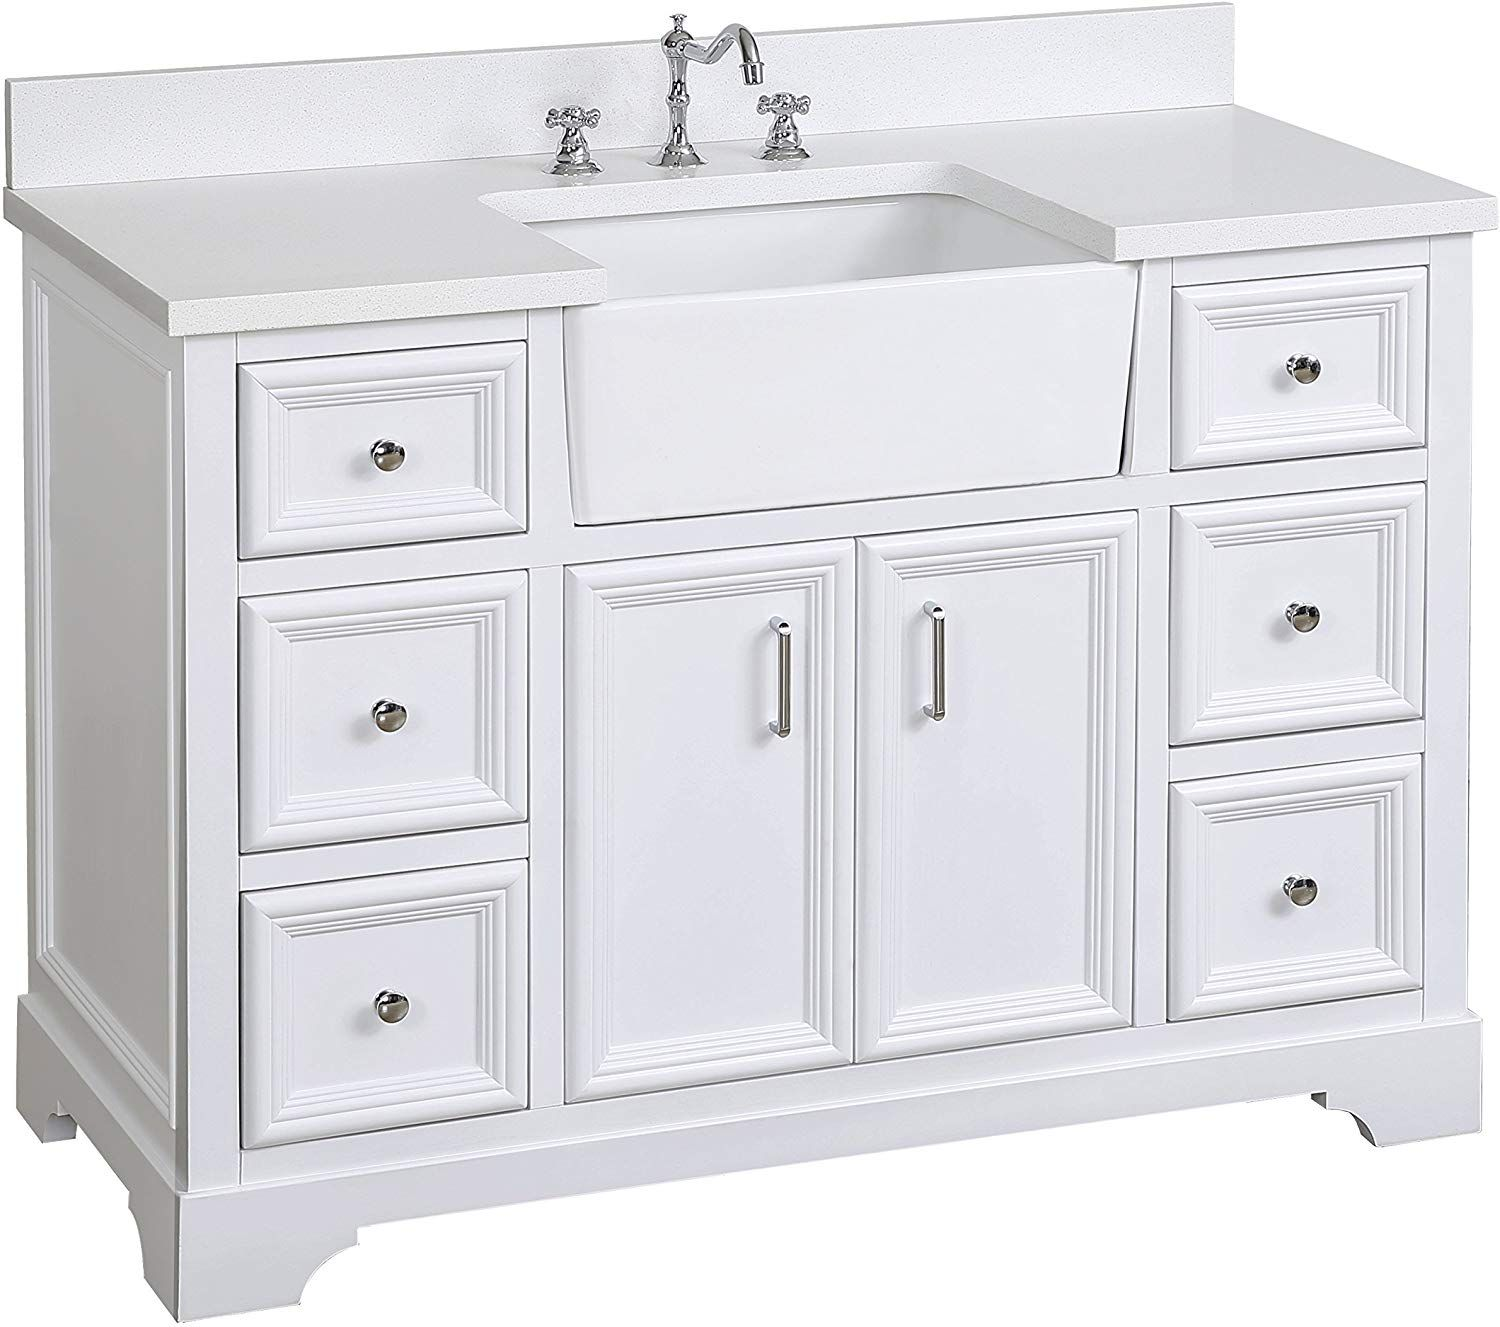 Zelda 48inch Bathroom Vanity Quartz White Includes a